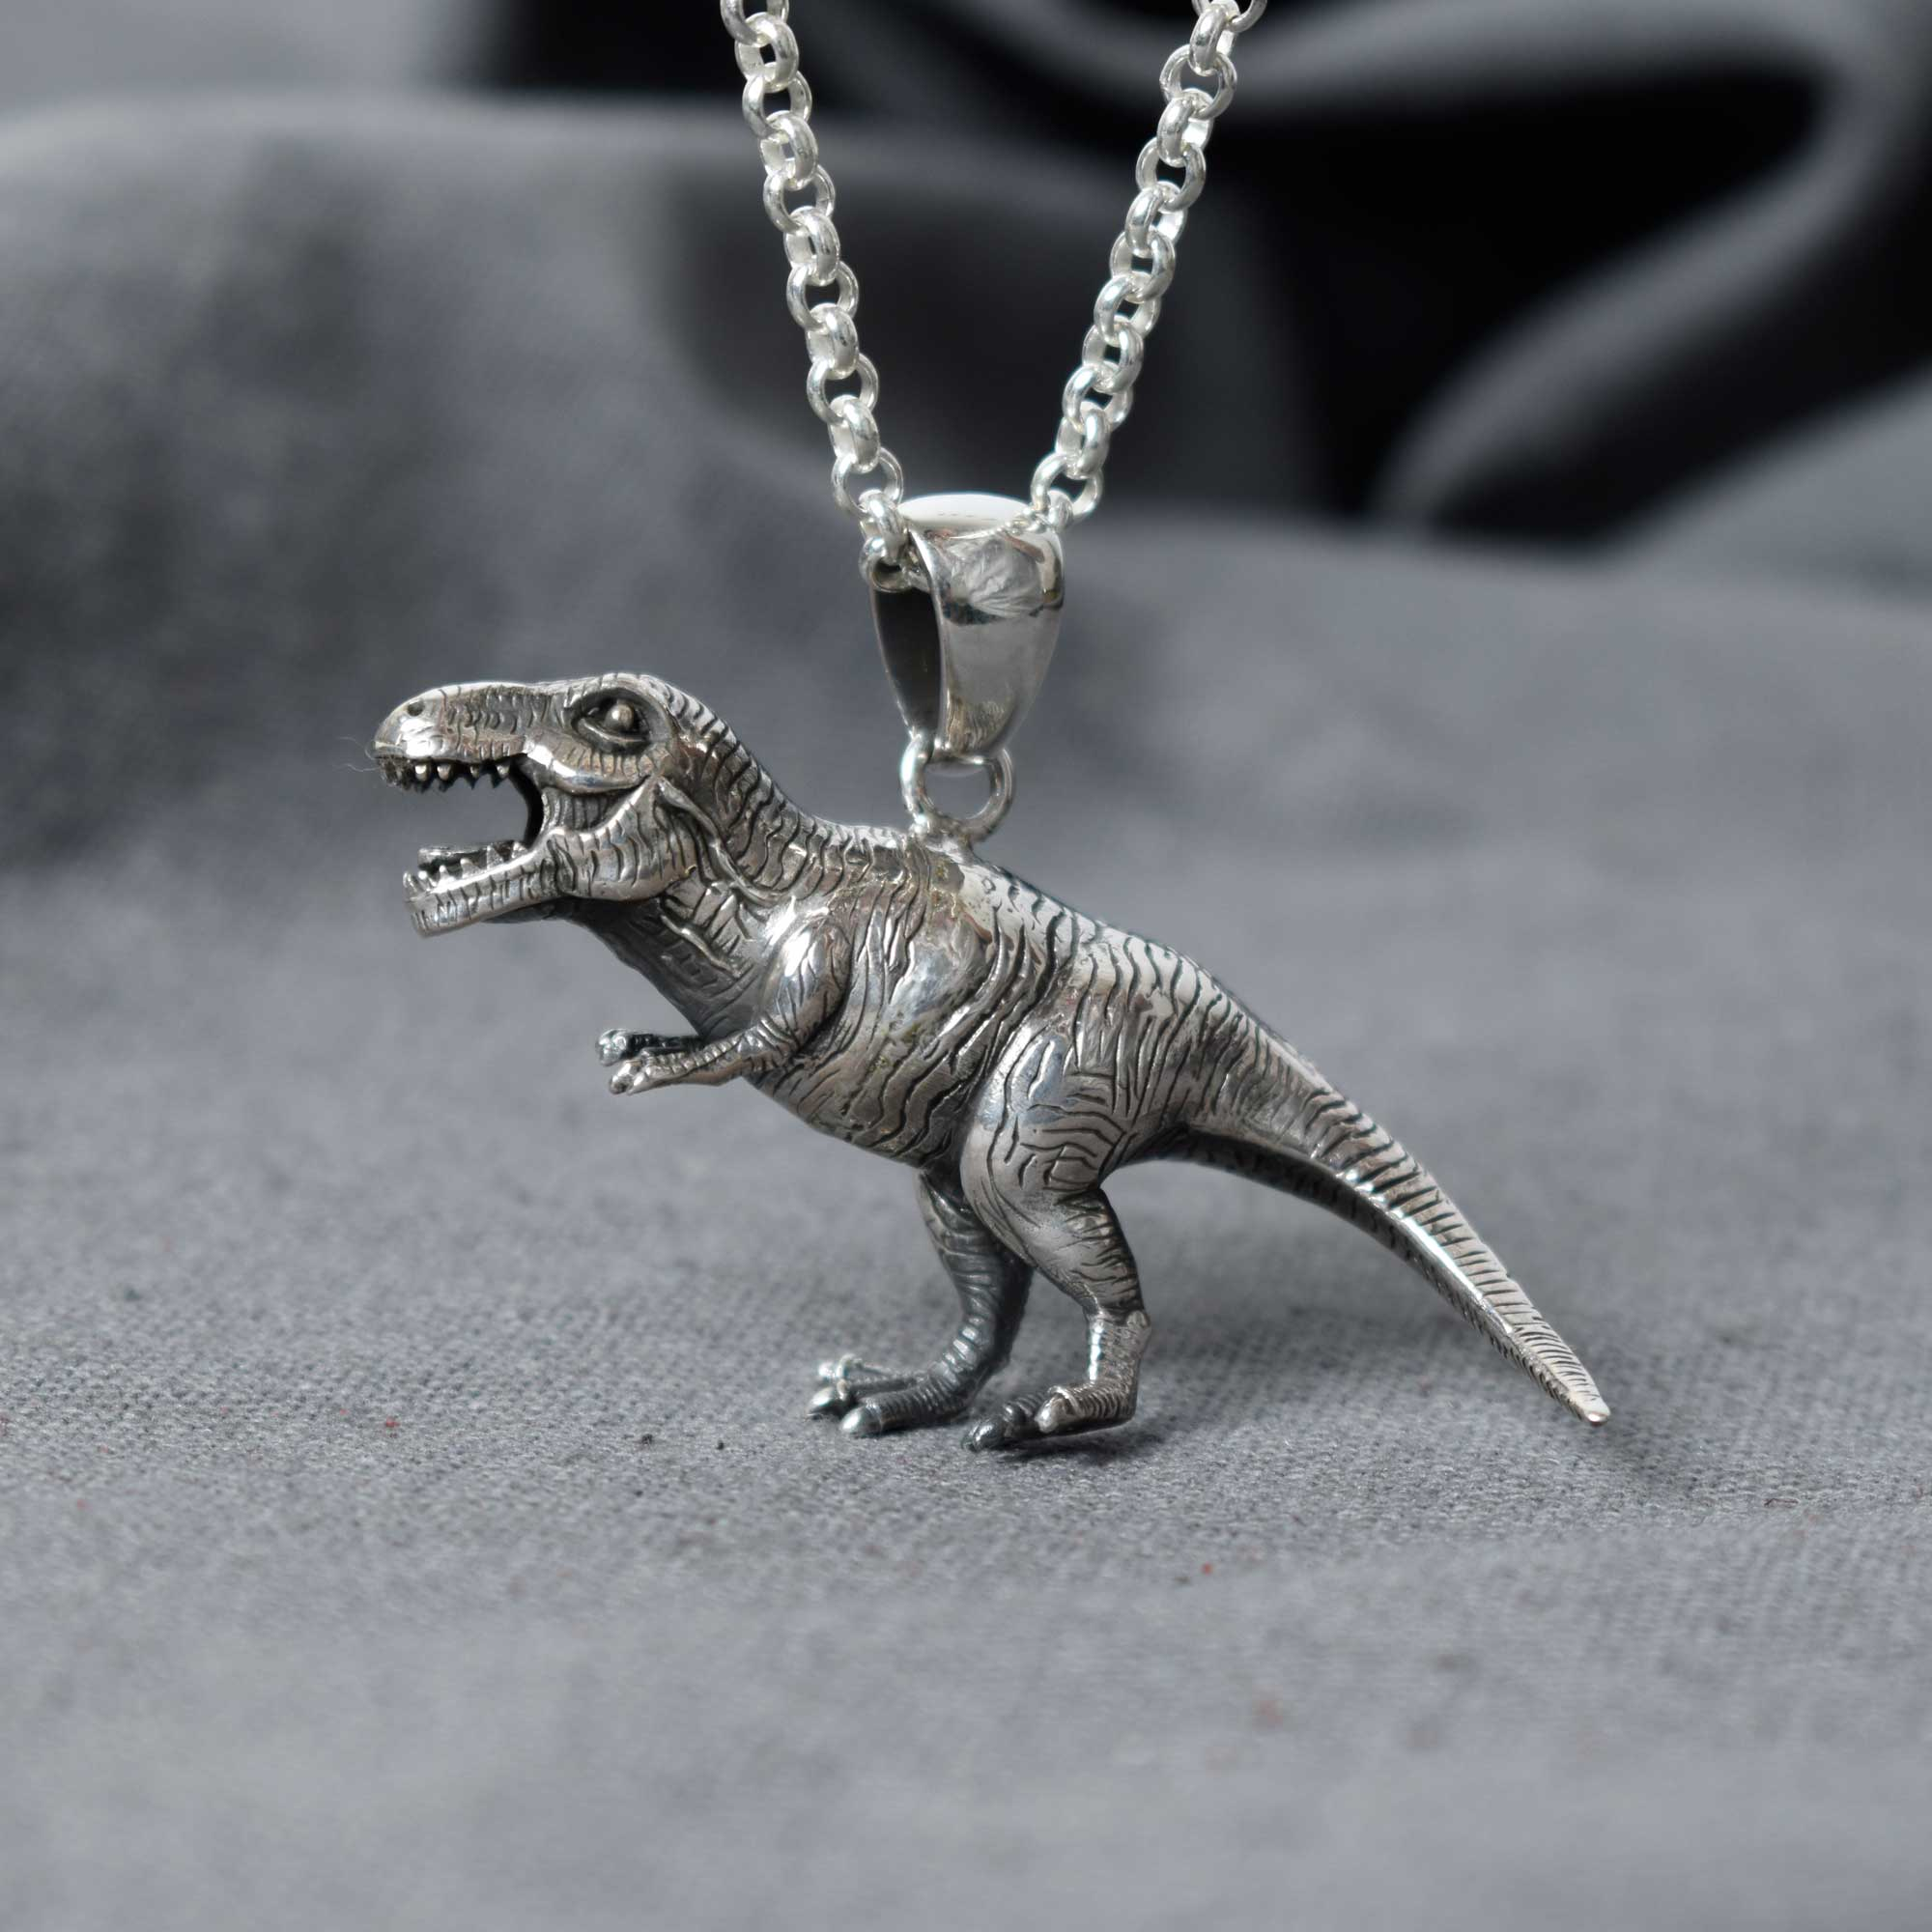 Tyrannosaurus Rex T-Rex 925 Sterling Silver Charm Necklace Pendant Jewelry